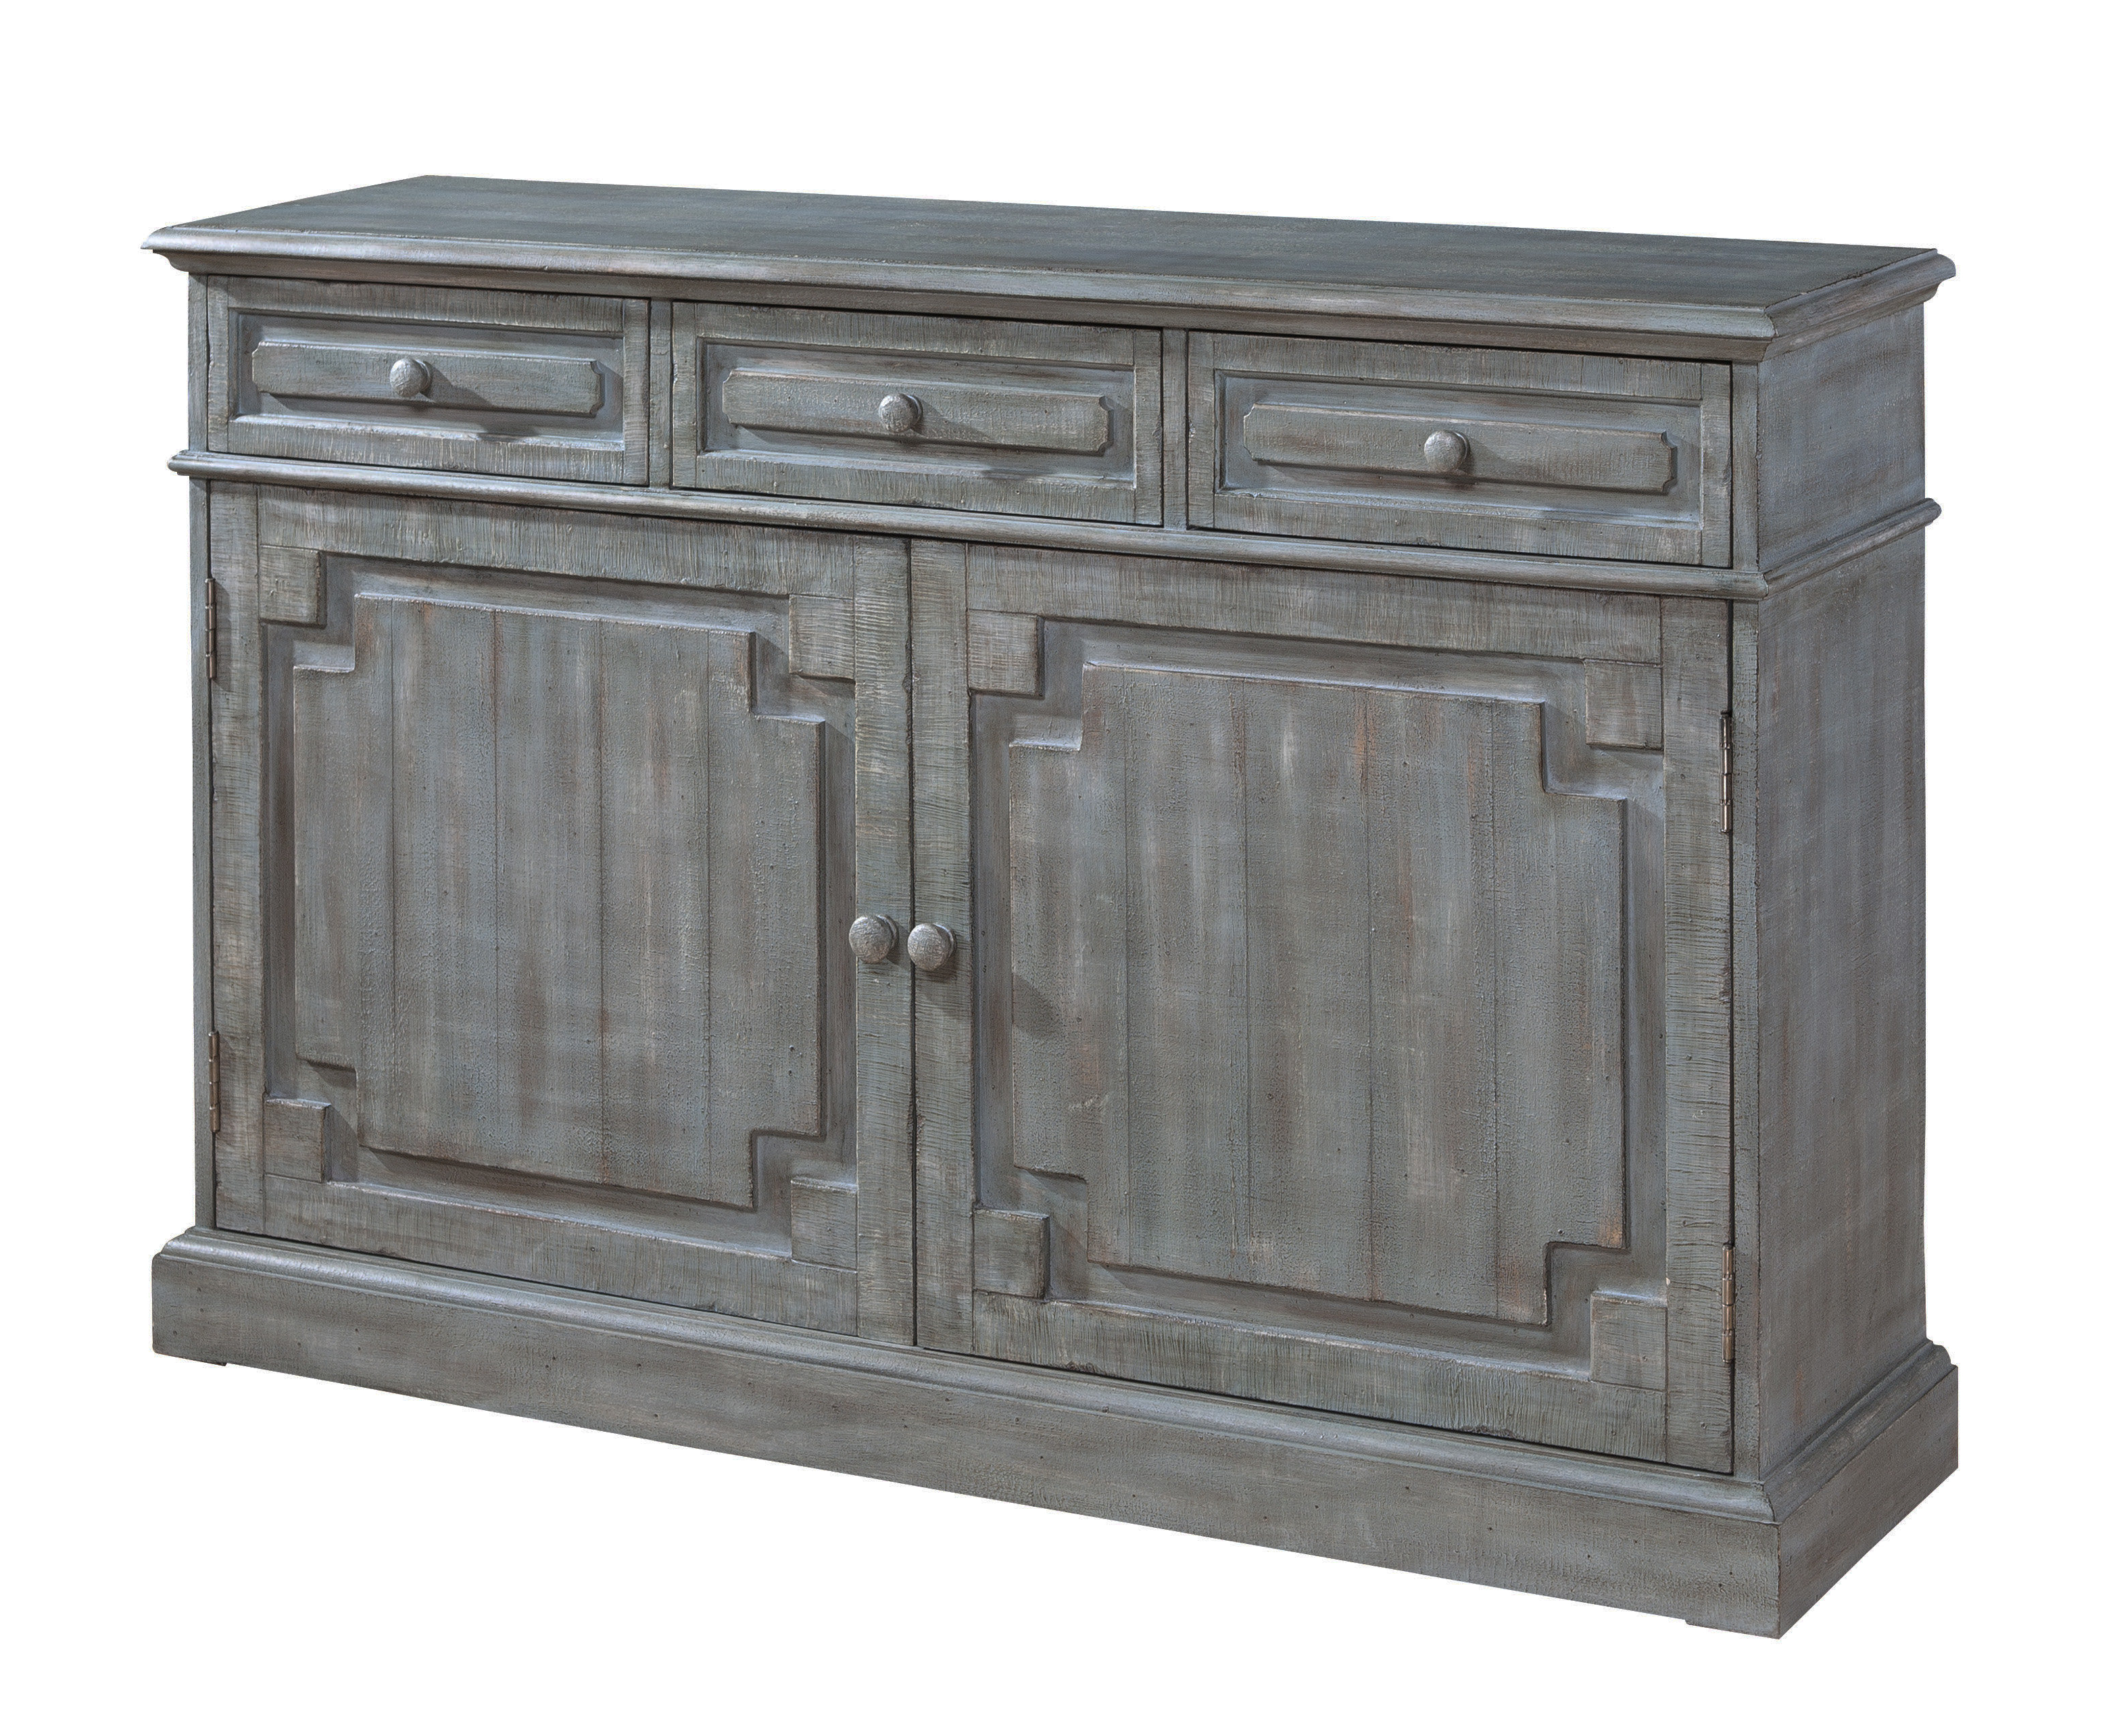 Bremner Credenzas Pertaining To Widely Used Mistana Carissa Credenza (View 17 of 20)